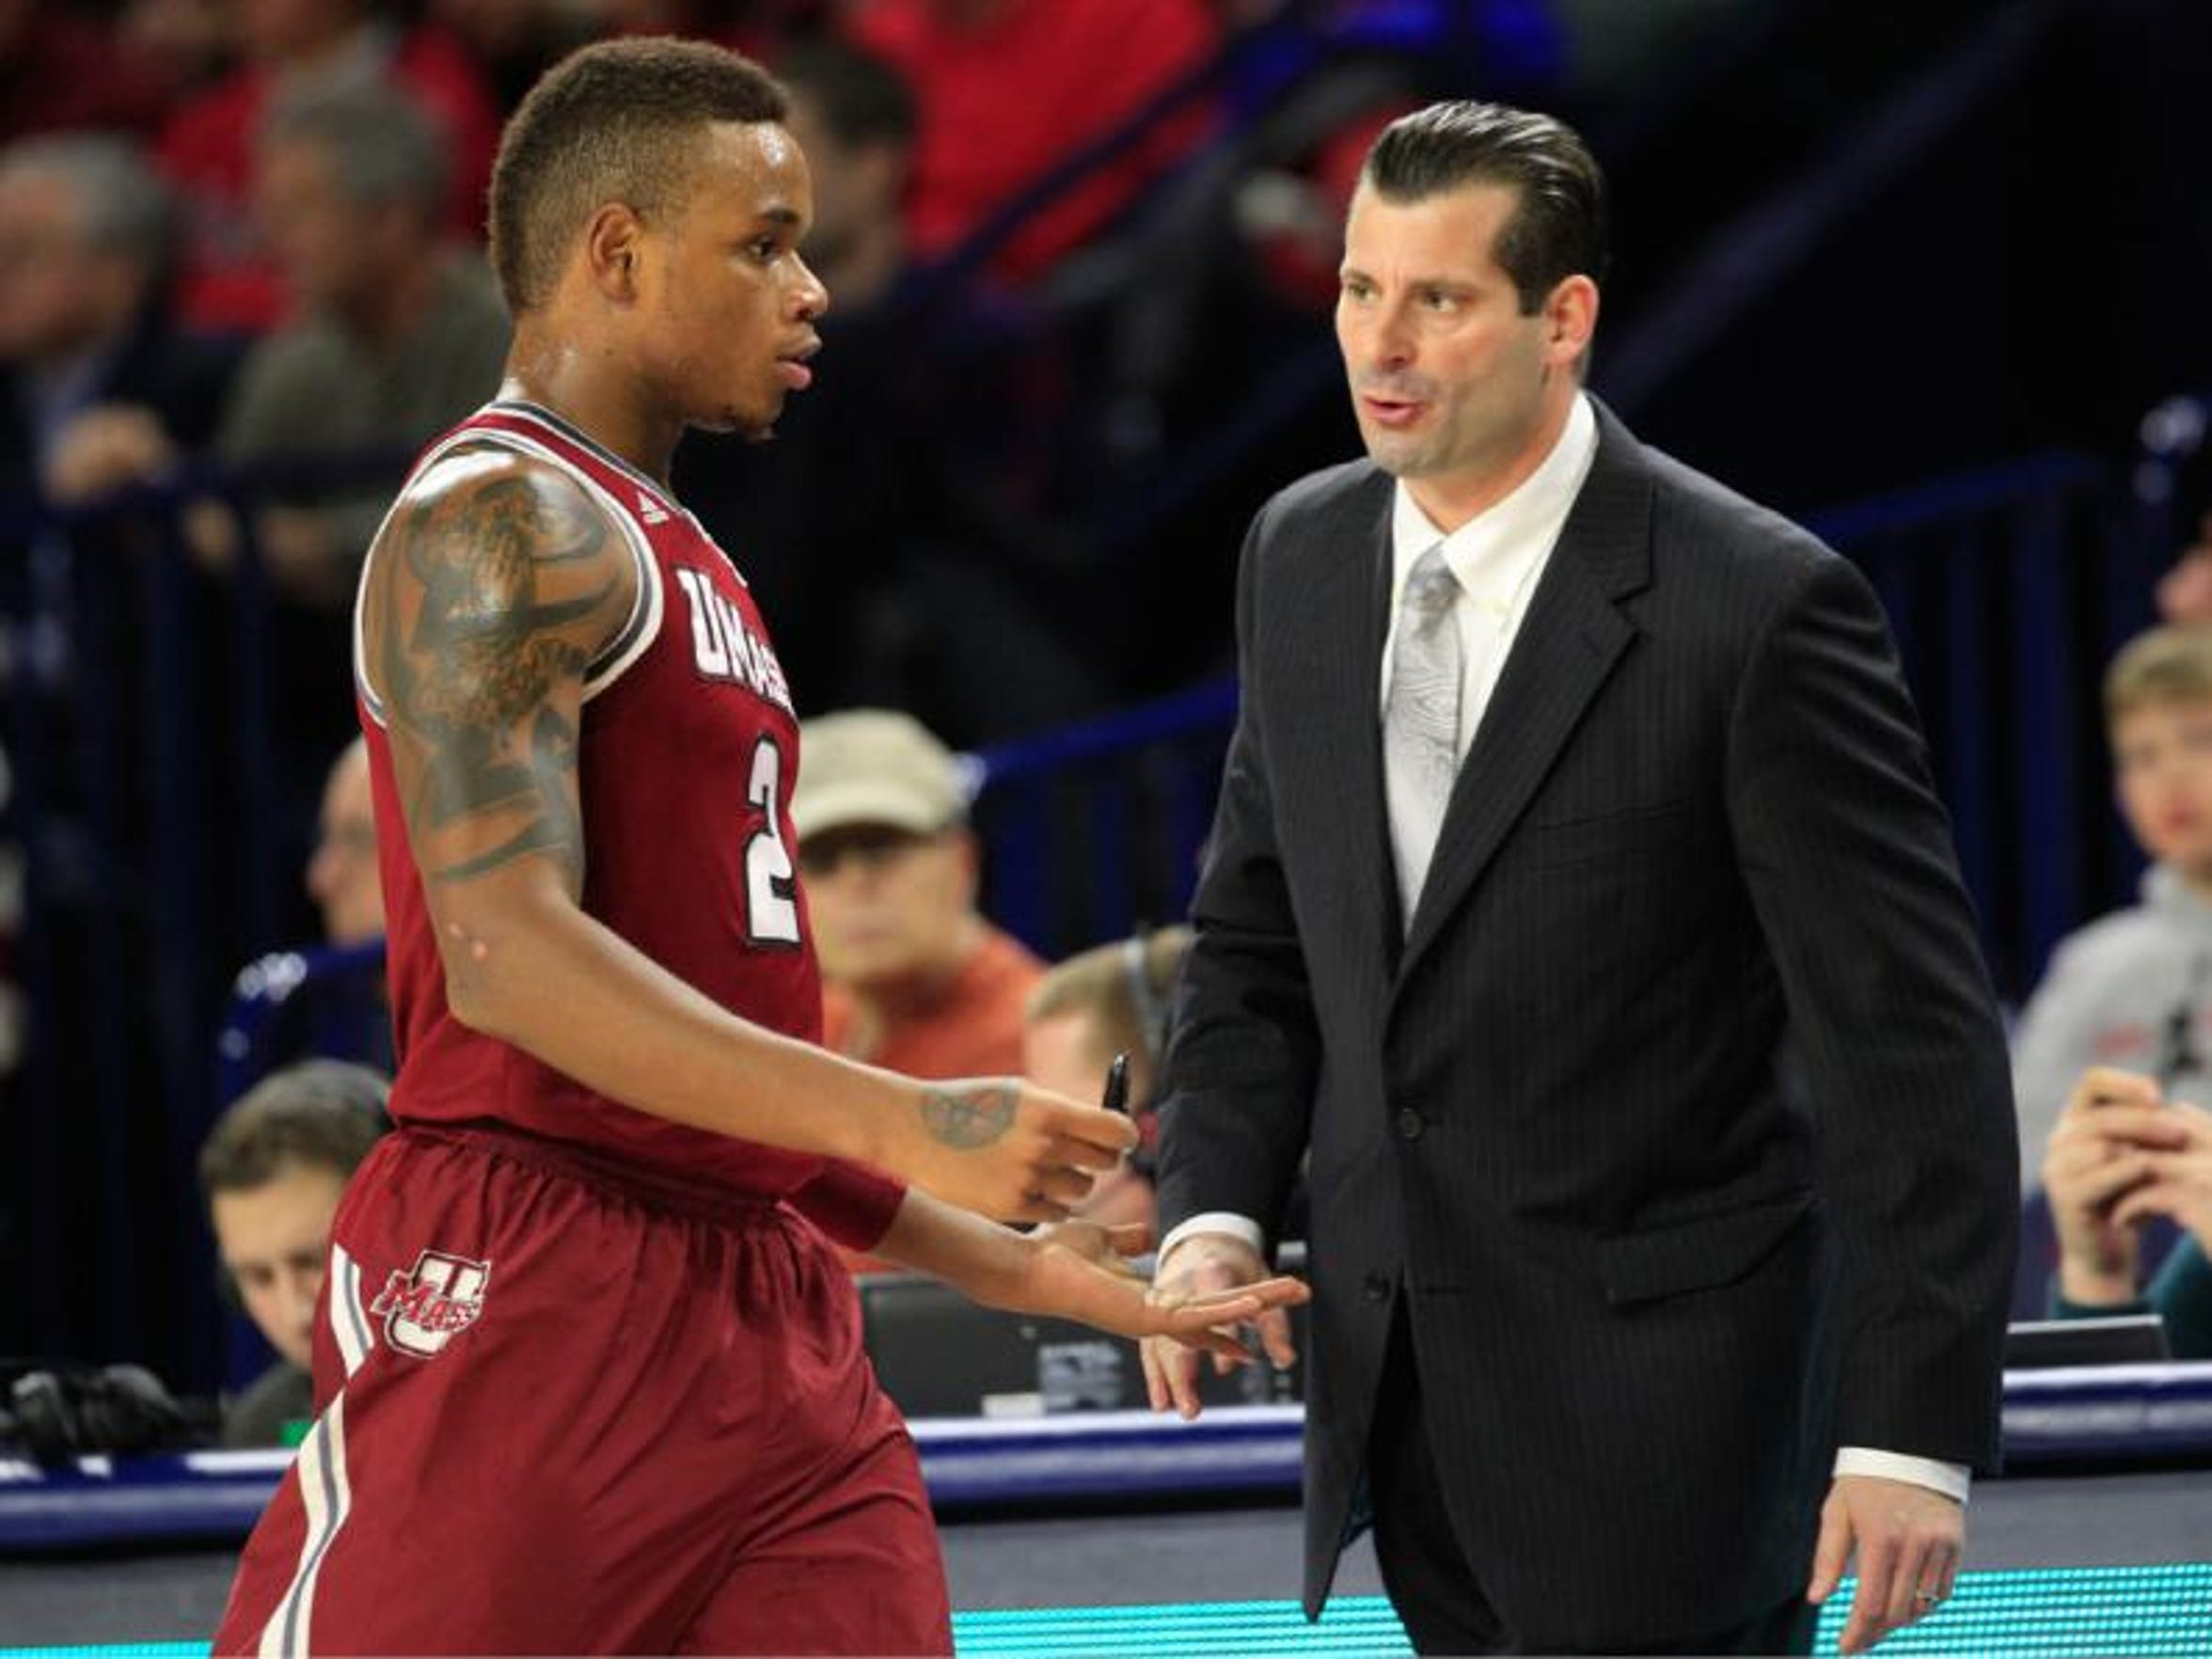 UMass coach Derek Kellogg, right, helped Derrick Gordon come out to his Minutemen teammates before transferring to Seton Hall.